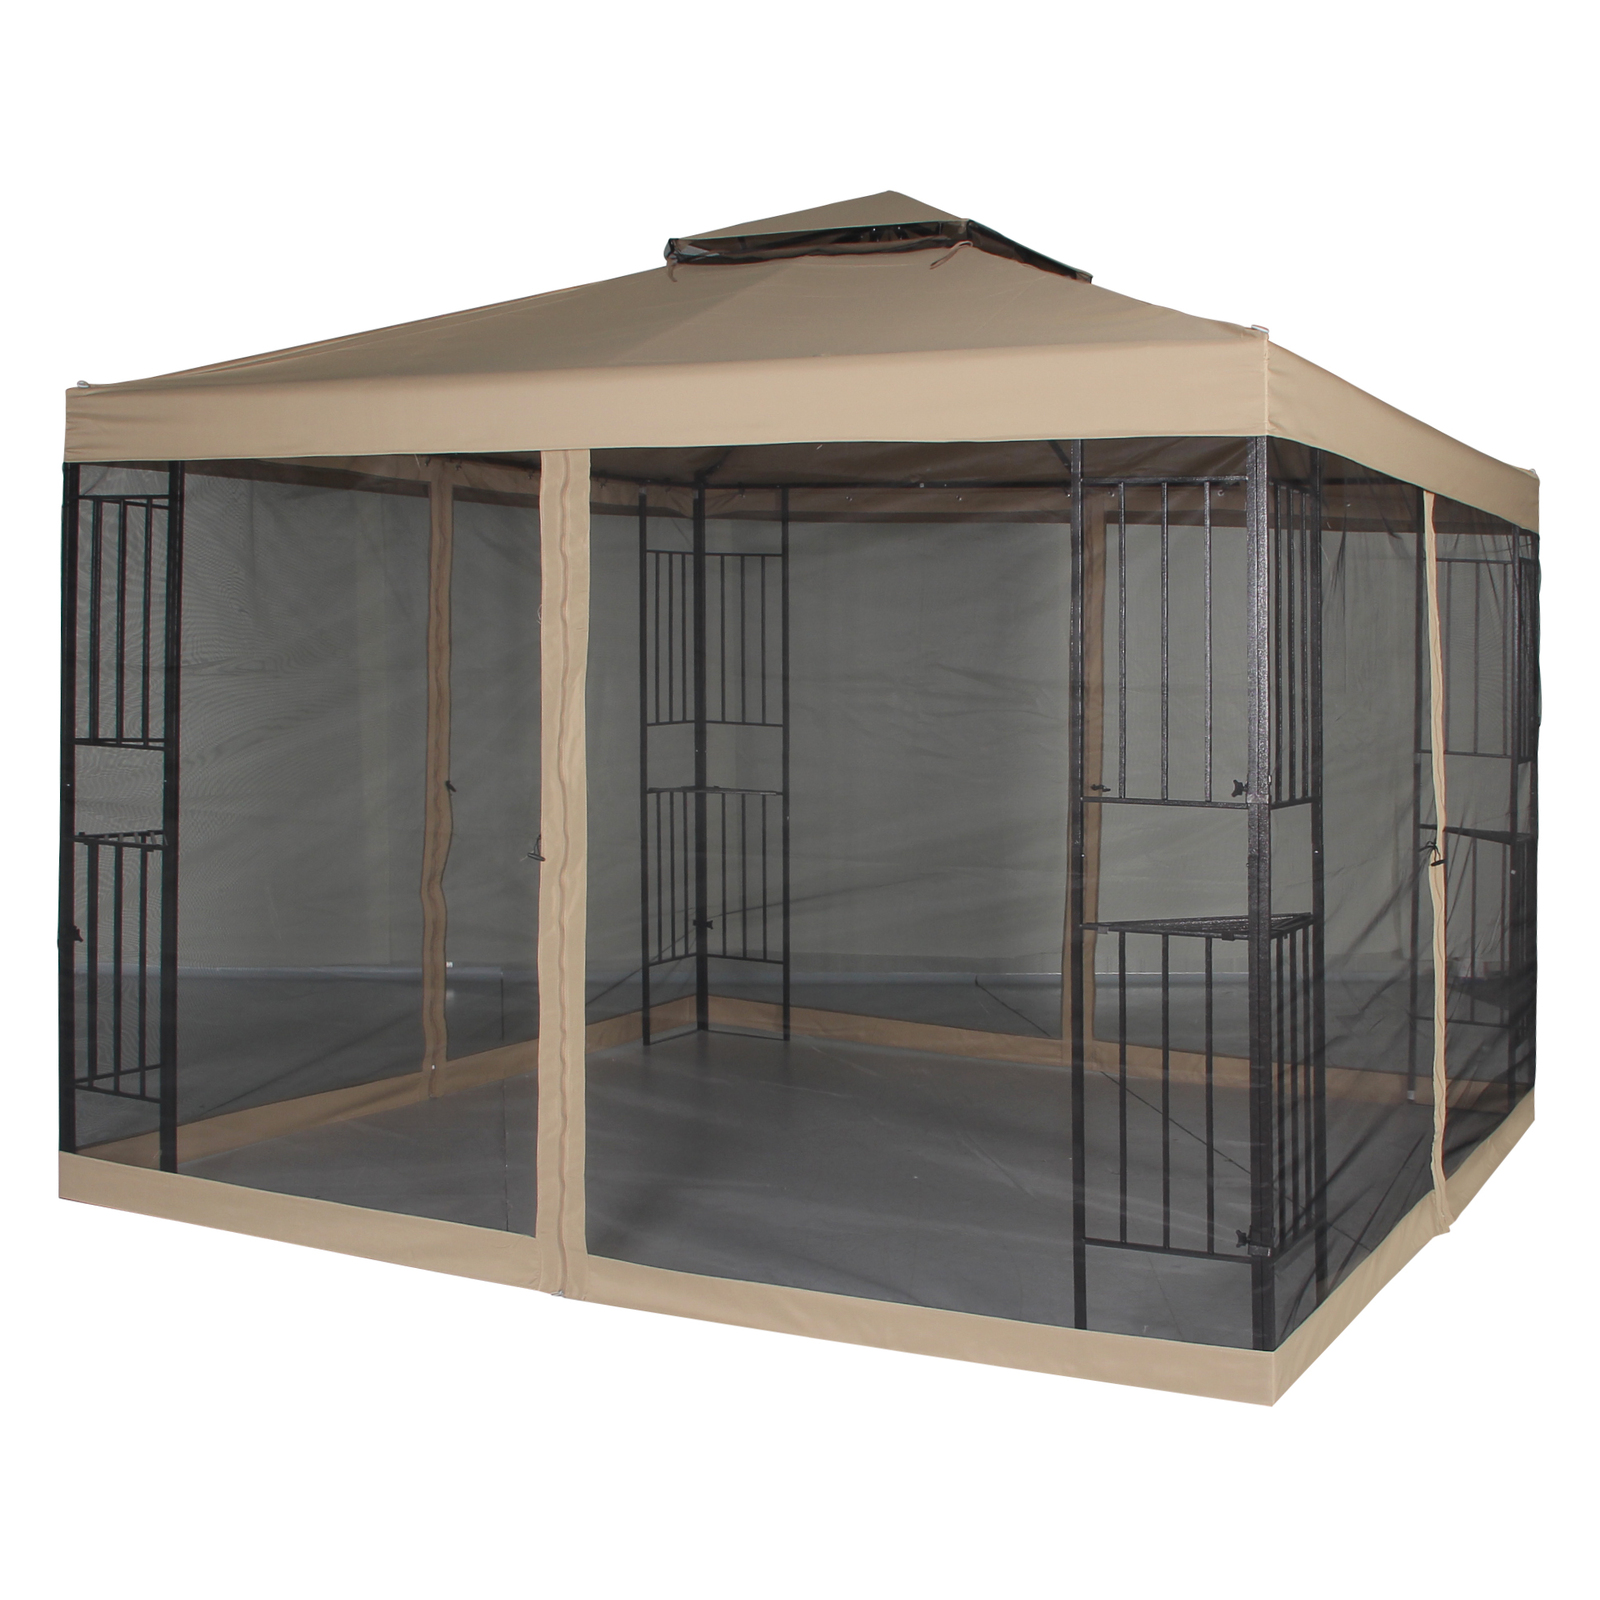 Garden Gazebo Polyester 10' x 10' Patio Backyard Double Roof Vented Netting Sand